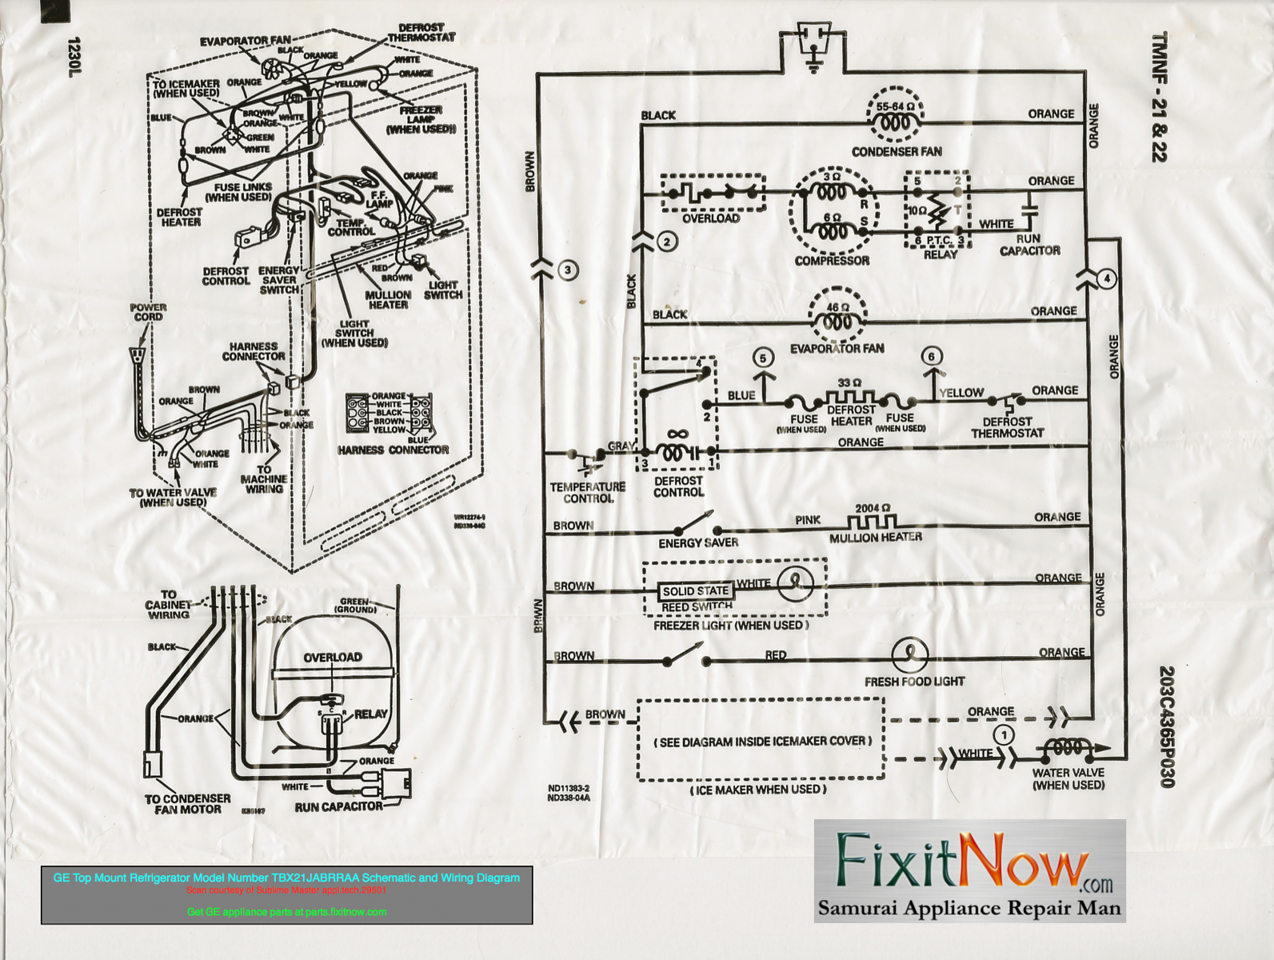 4904374061_e8eb3df6c6_o X2 wiring diagrams and schematics appliantology temperature control wiring diagram at mifinder.co